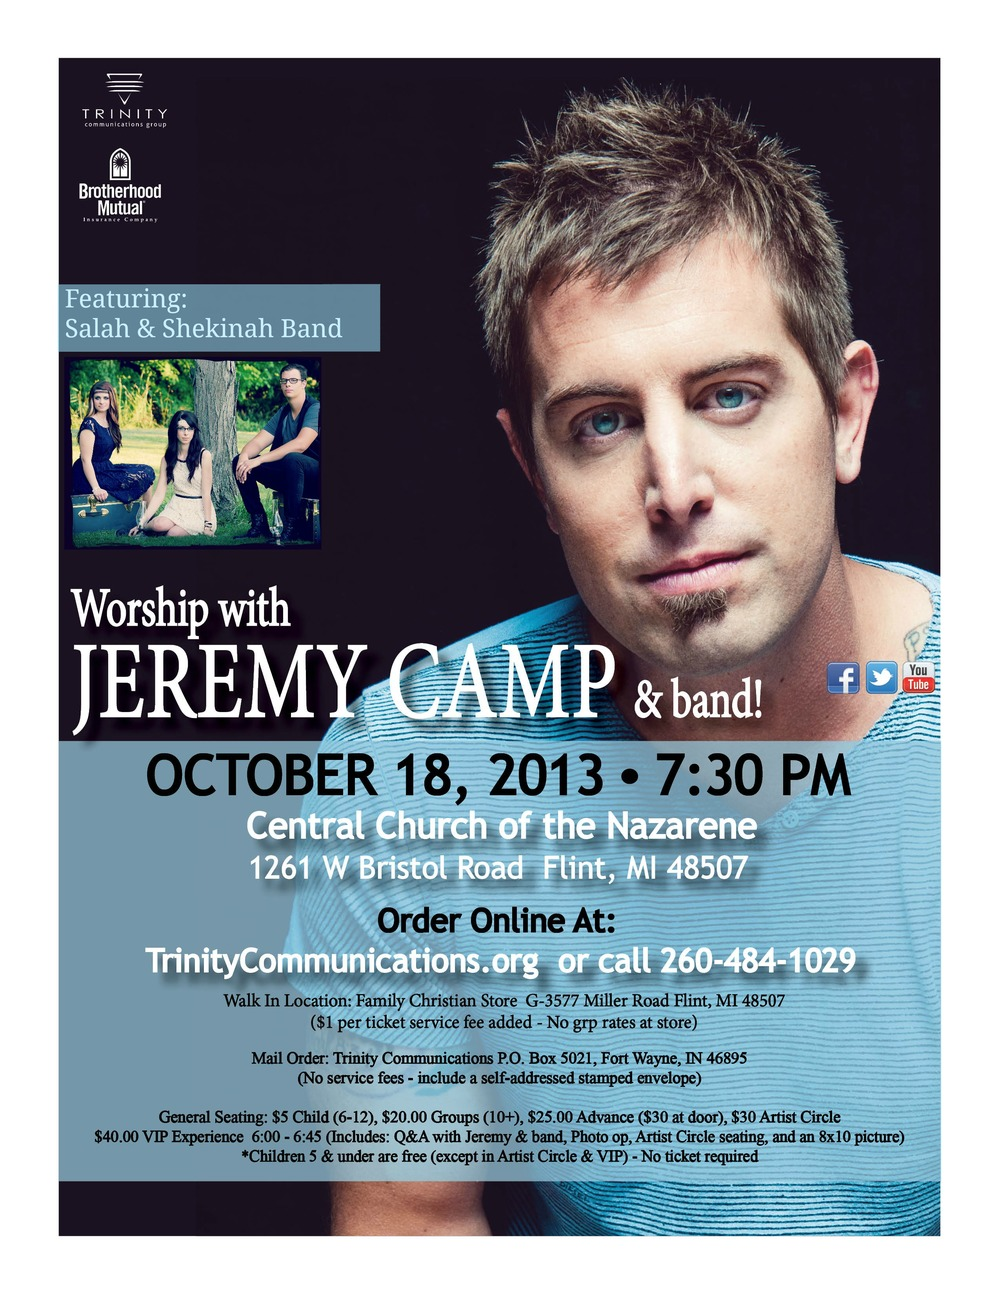 13-Jeremy Camp-Flint-Poster (1)_.jpg